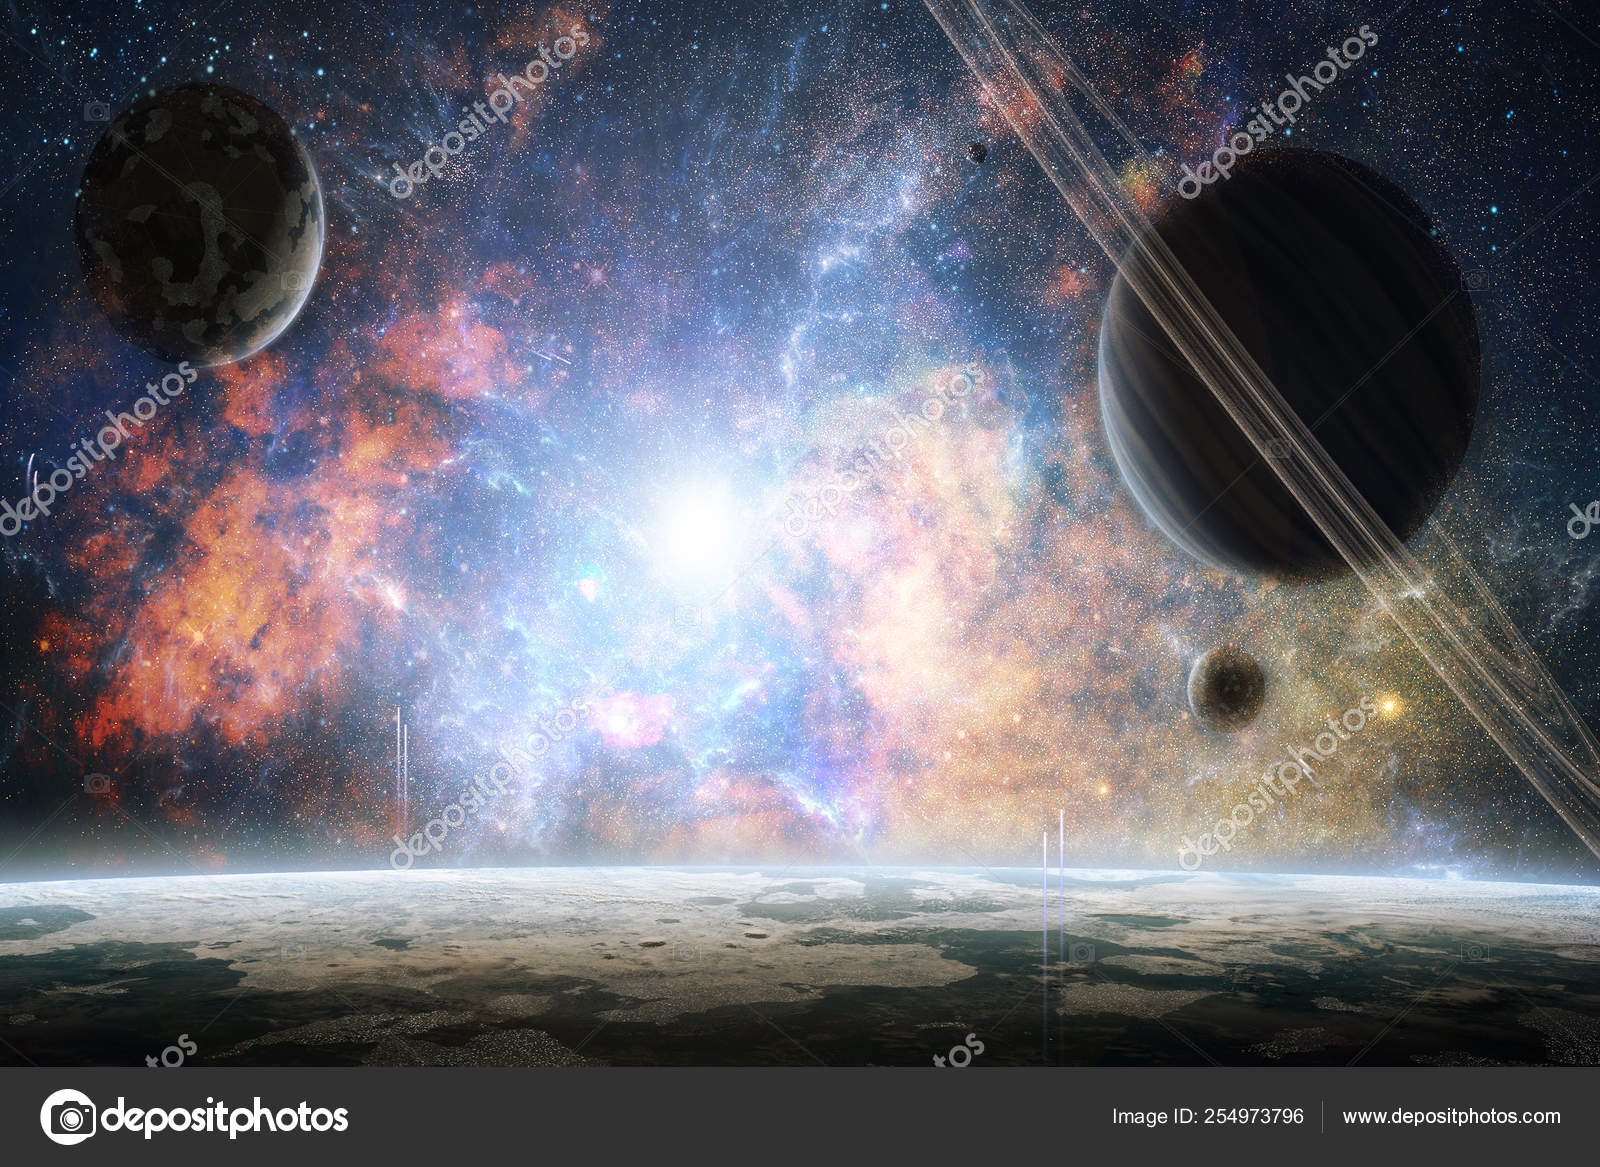 Artistic Abstract Planets In A Colorful Bright Galaxy Background Stock Photo C Mo Ali 254973796